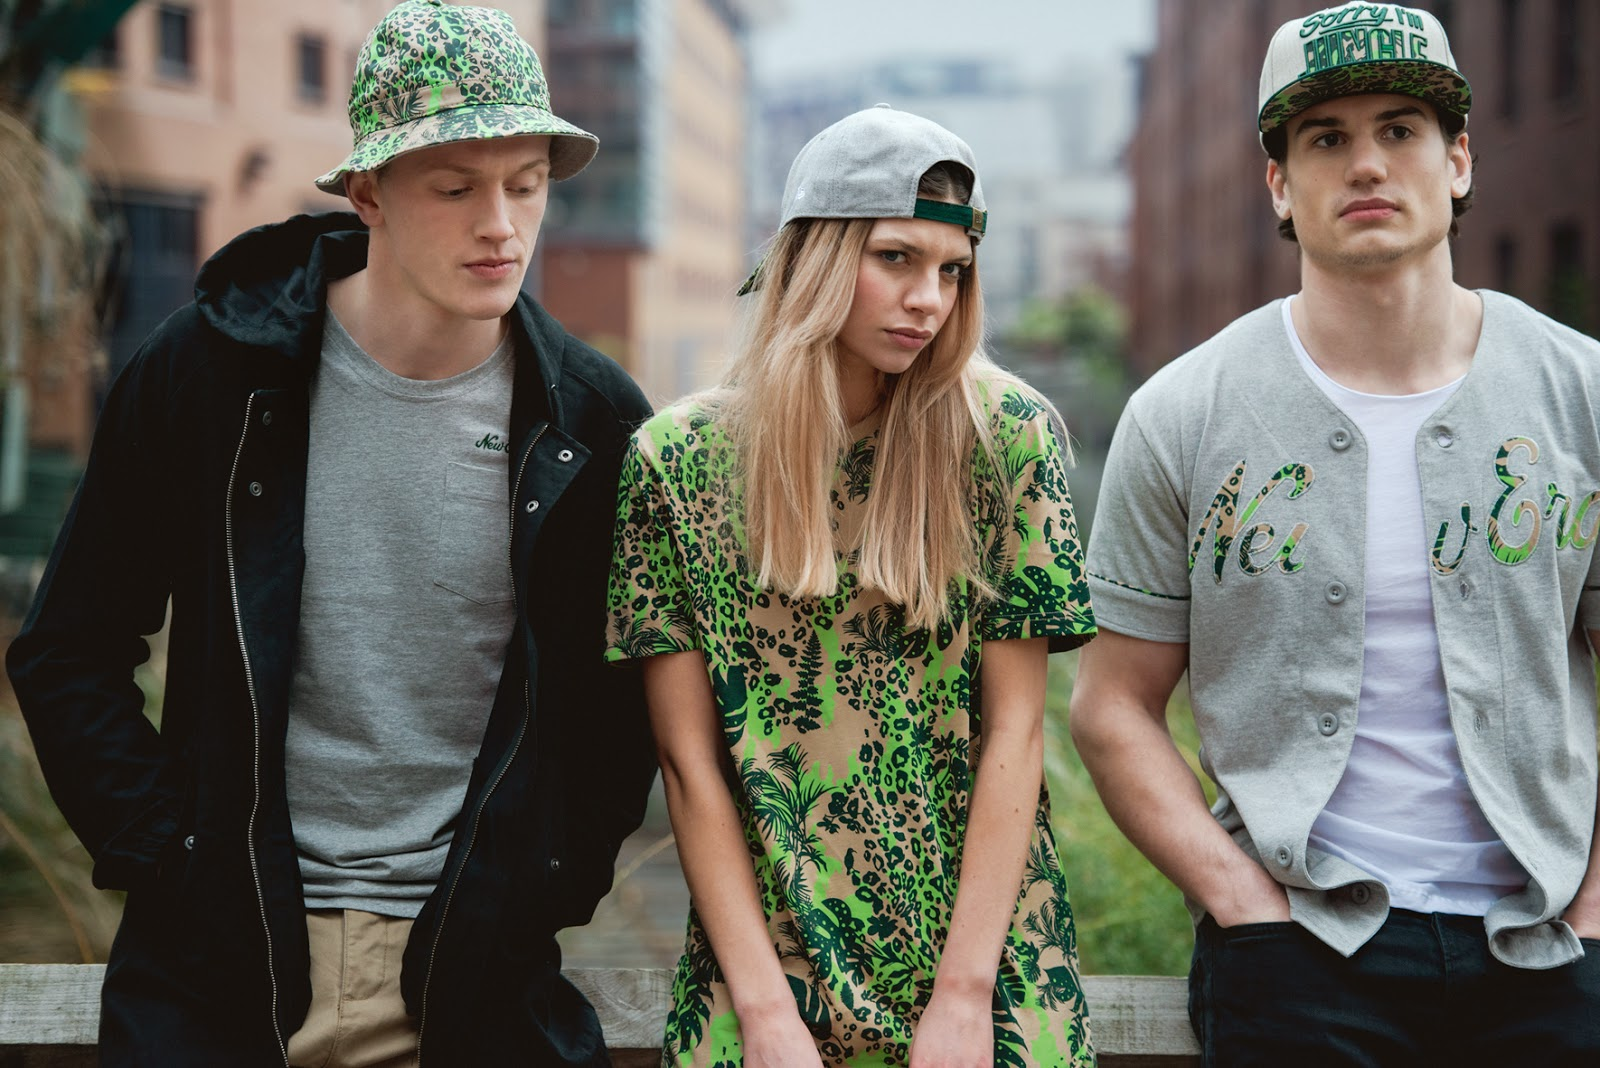 New Era, primavera, Spring 2015, gorras, complementos, sportwear, casual, moda femenina., Jungle Pack, be divinity,